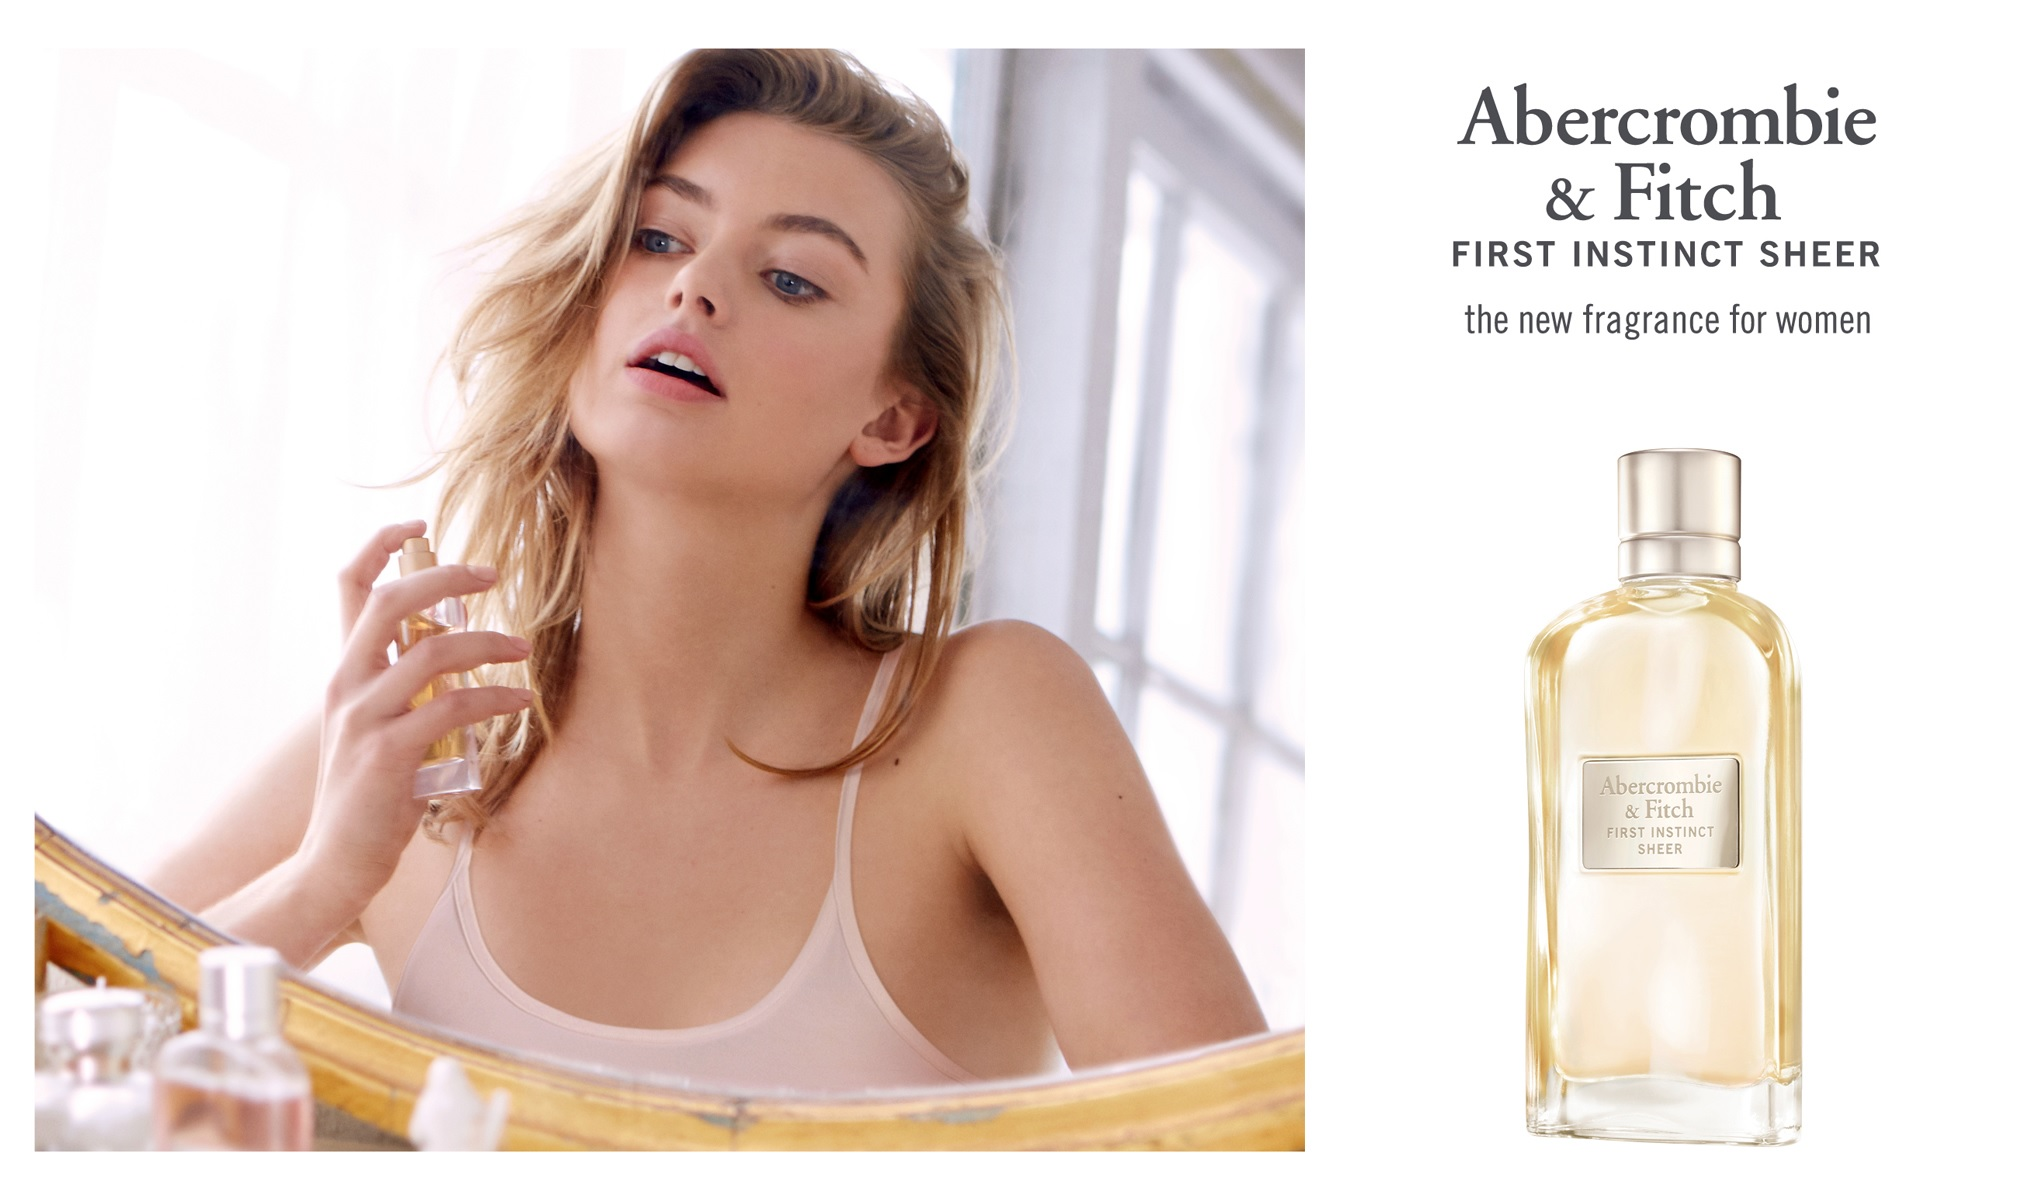 Abercrombie&Fitch First Instinct Sheer Woman - Perfumy damskie - Nez